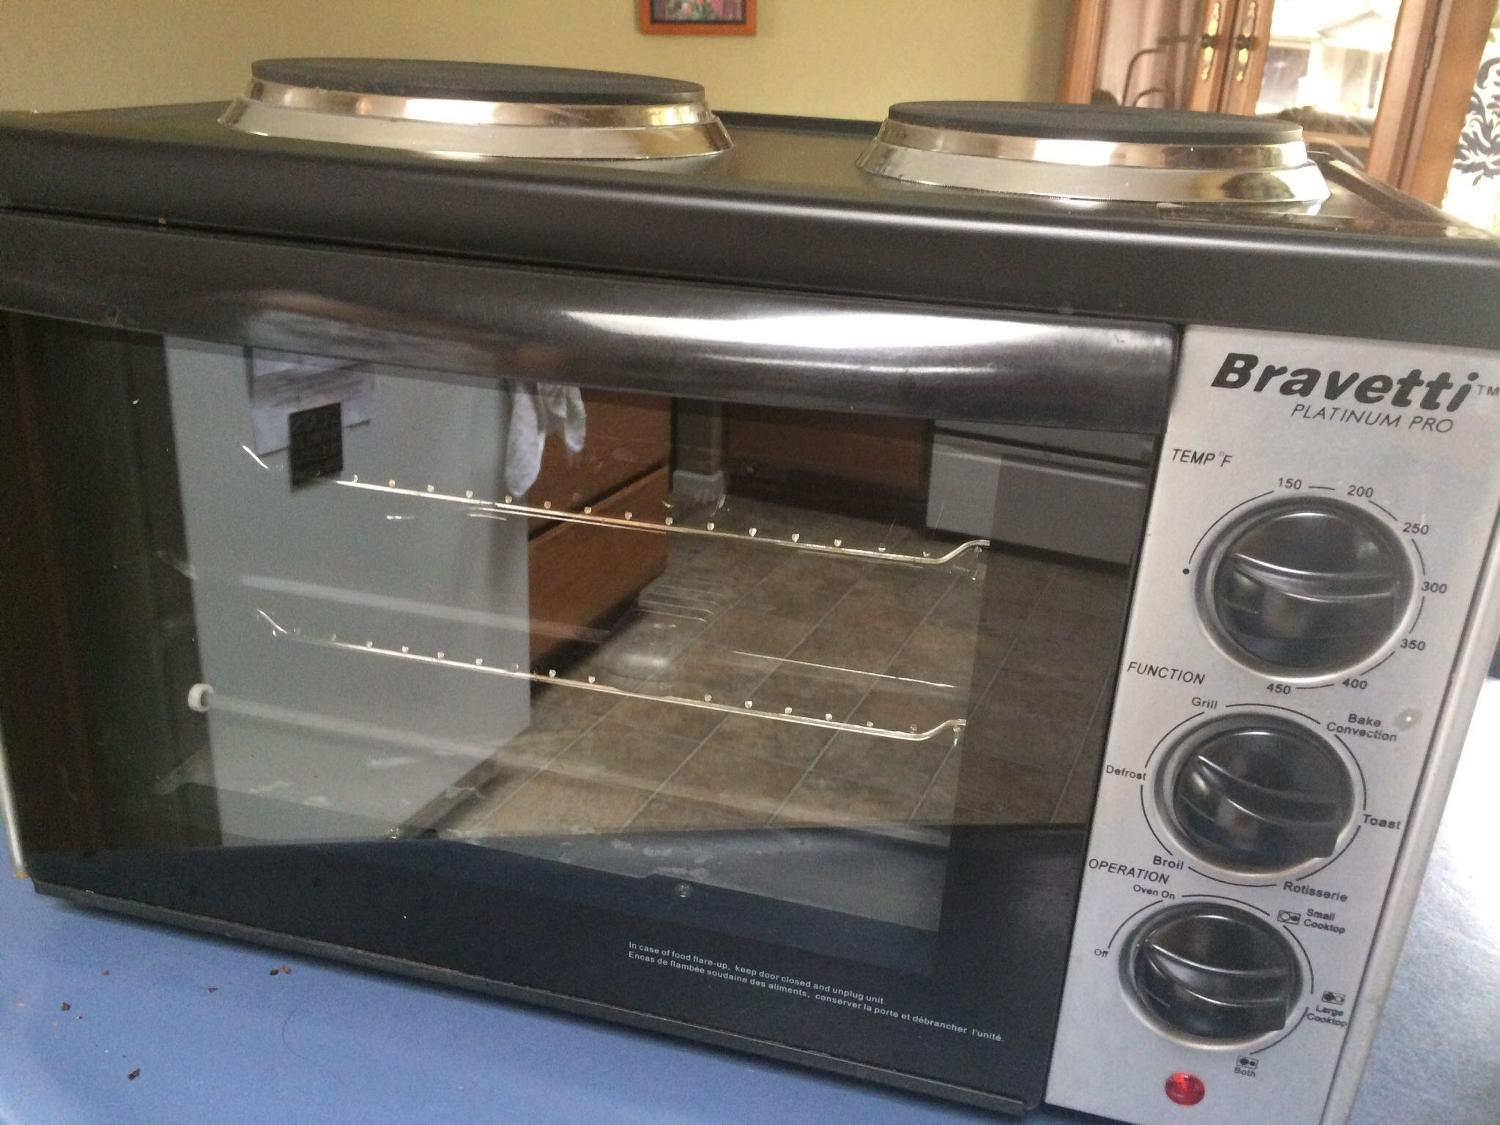 Bravetti Toaster Oven With Cooktop All About Image Hd